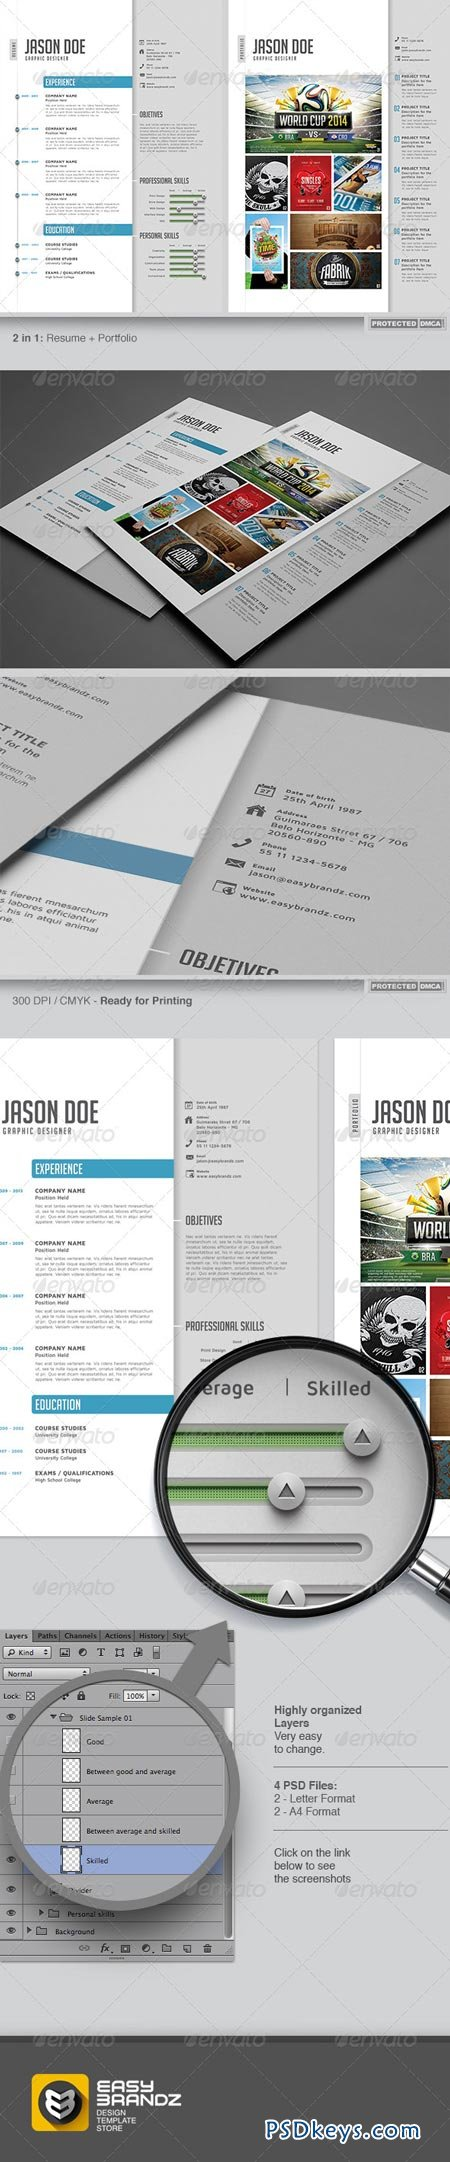 resume  u0026 portfolio template 6674598  u00bb free download photoshop vector stock image via torrent